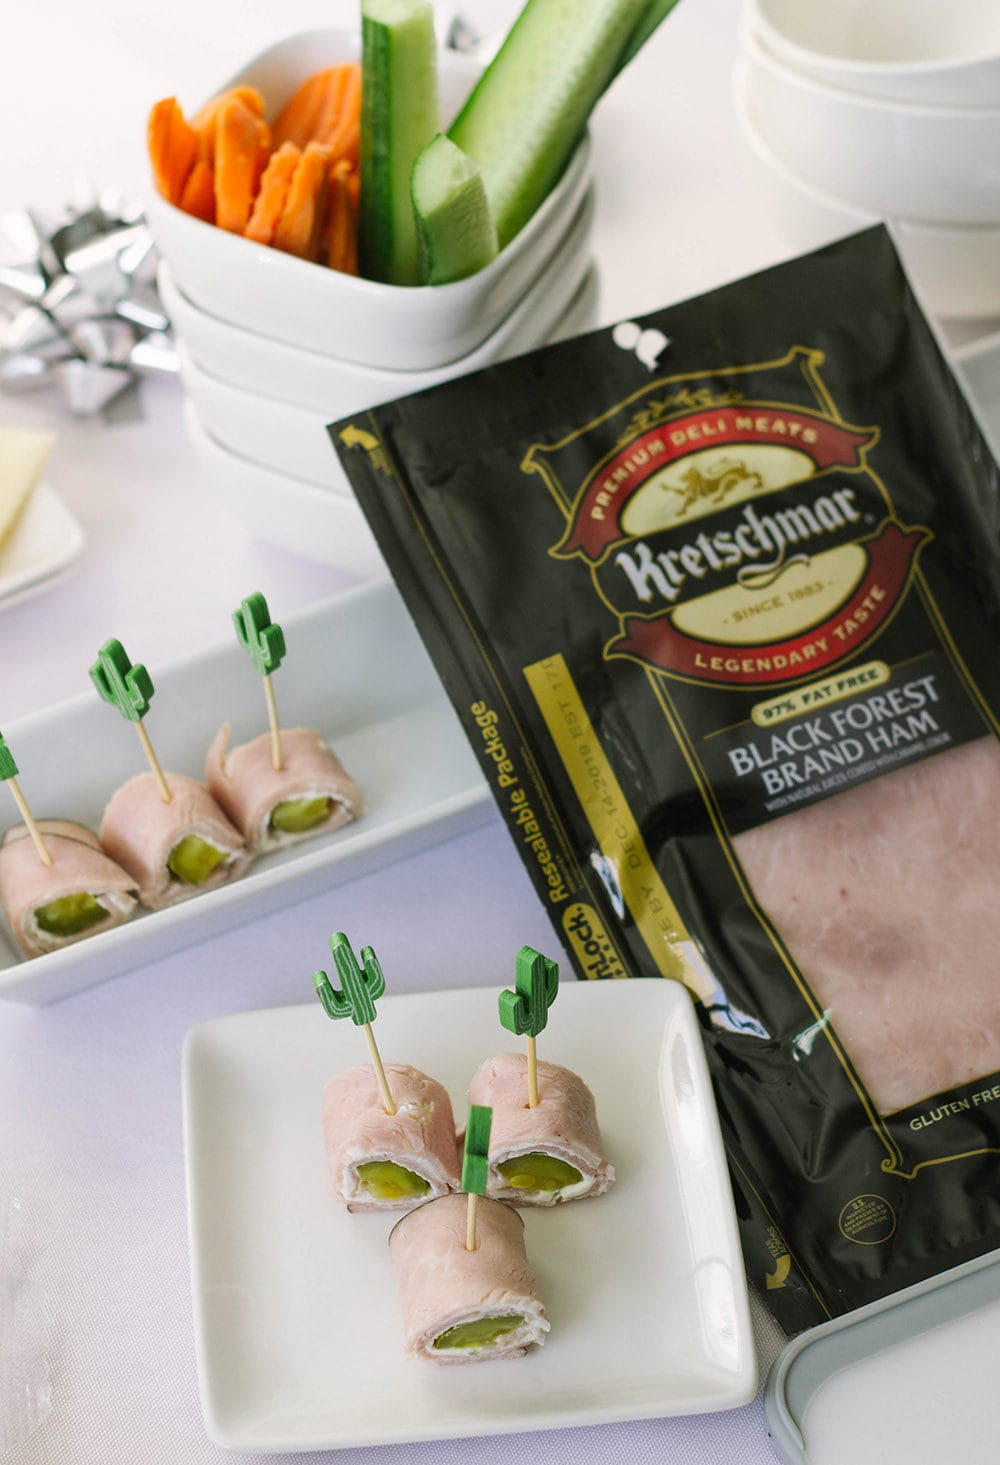 Ham and pickle rolls